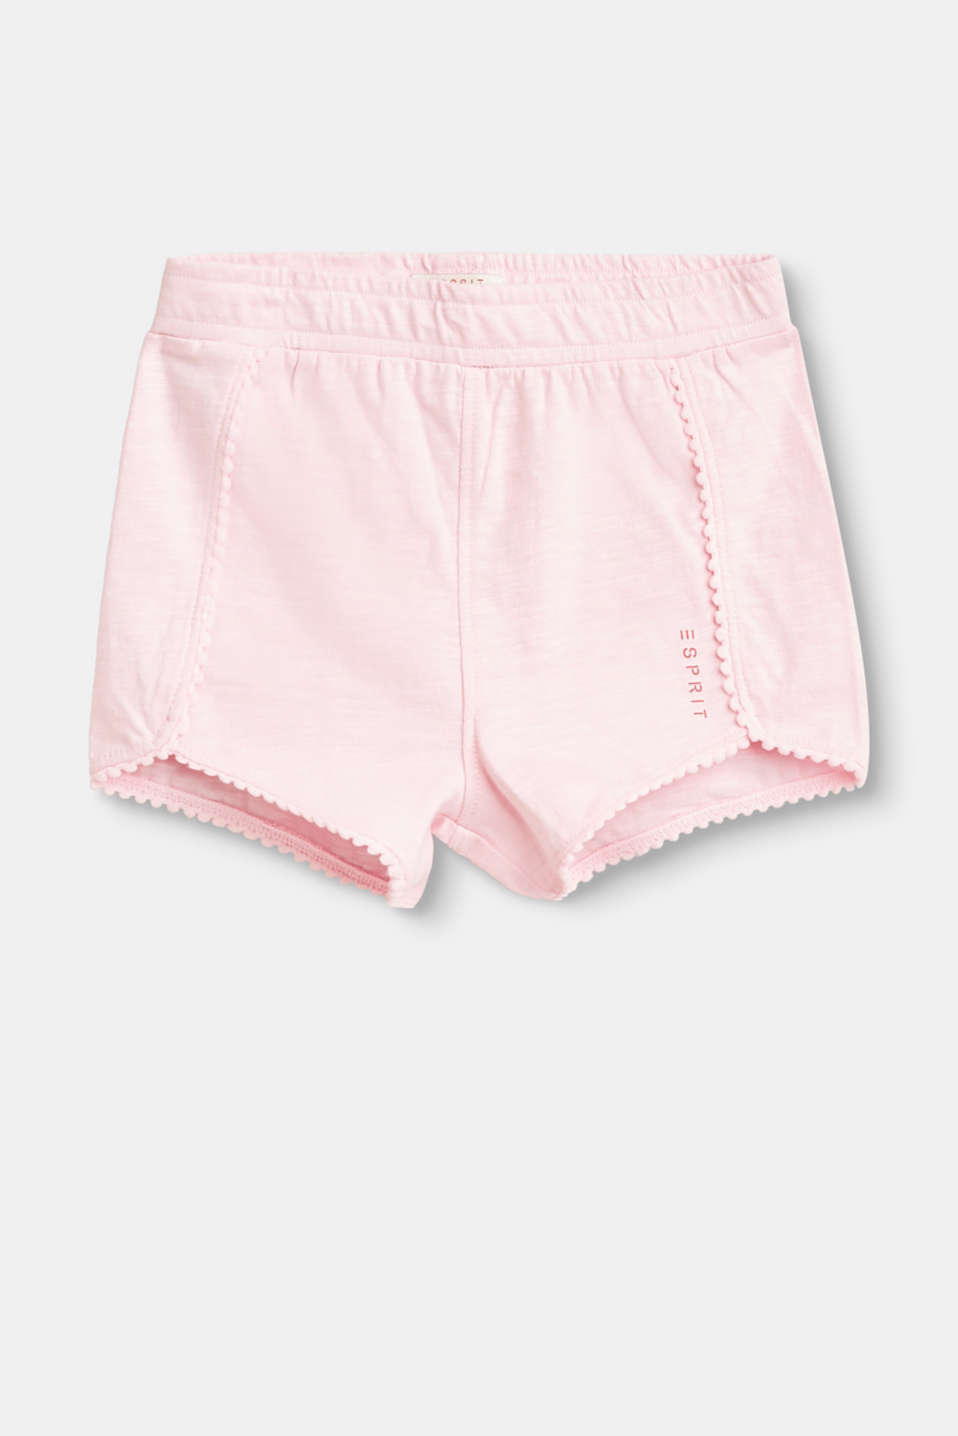 Great summer piece! These charming shorts are characterised by soft slub jersey combined with cute pompom borders.